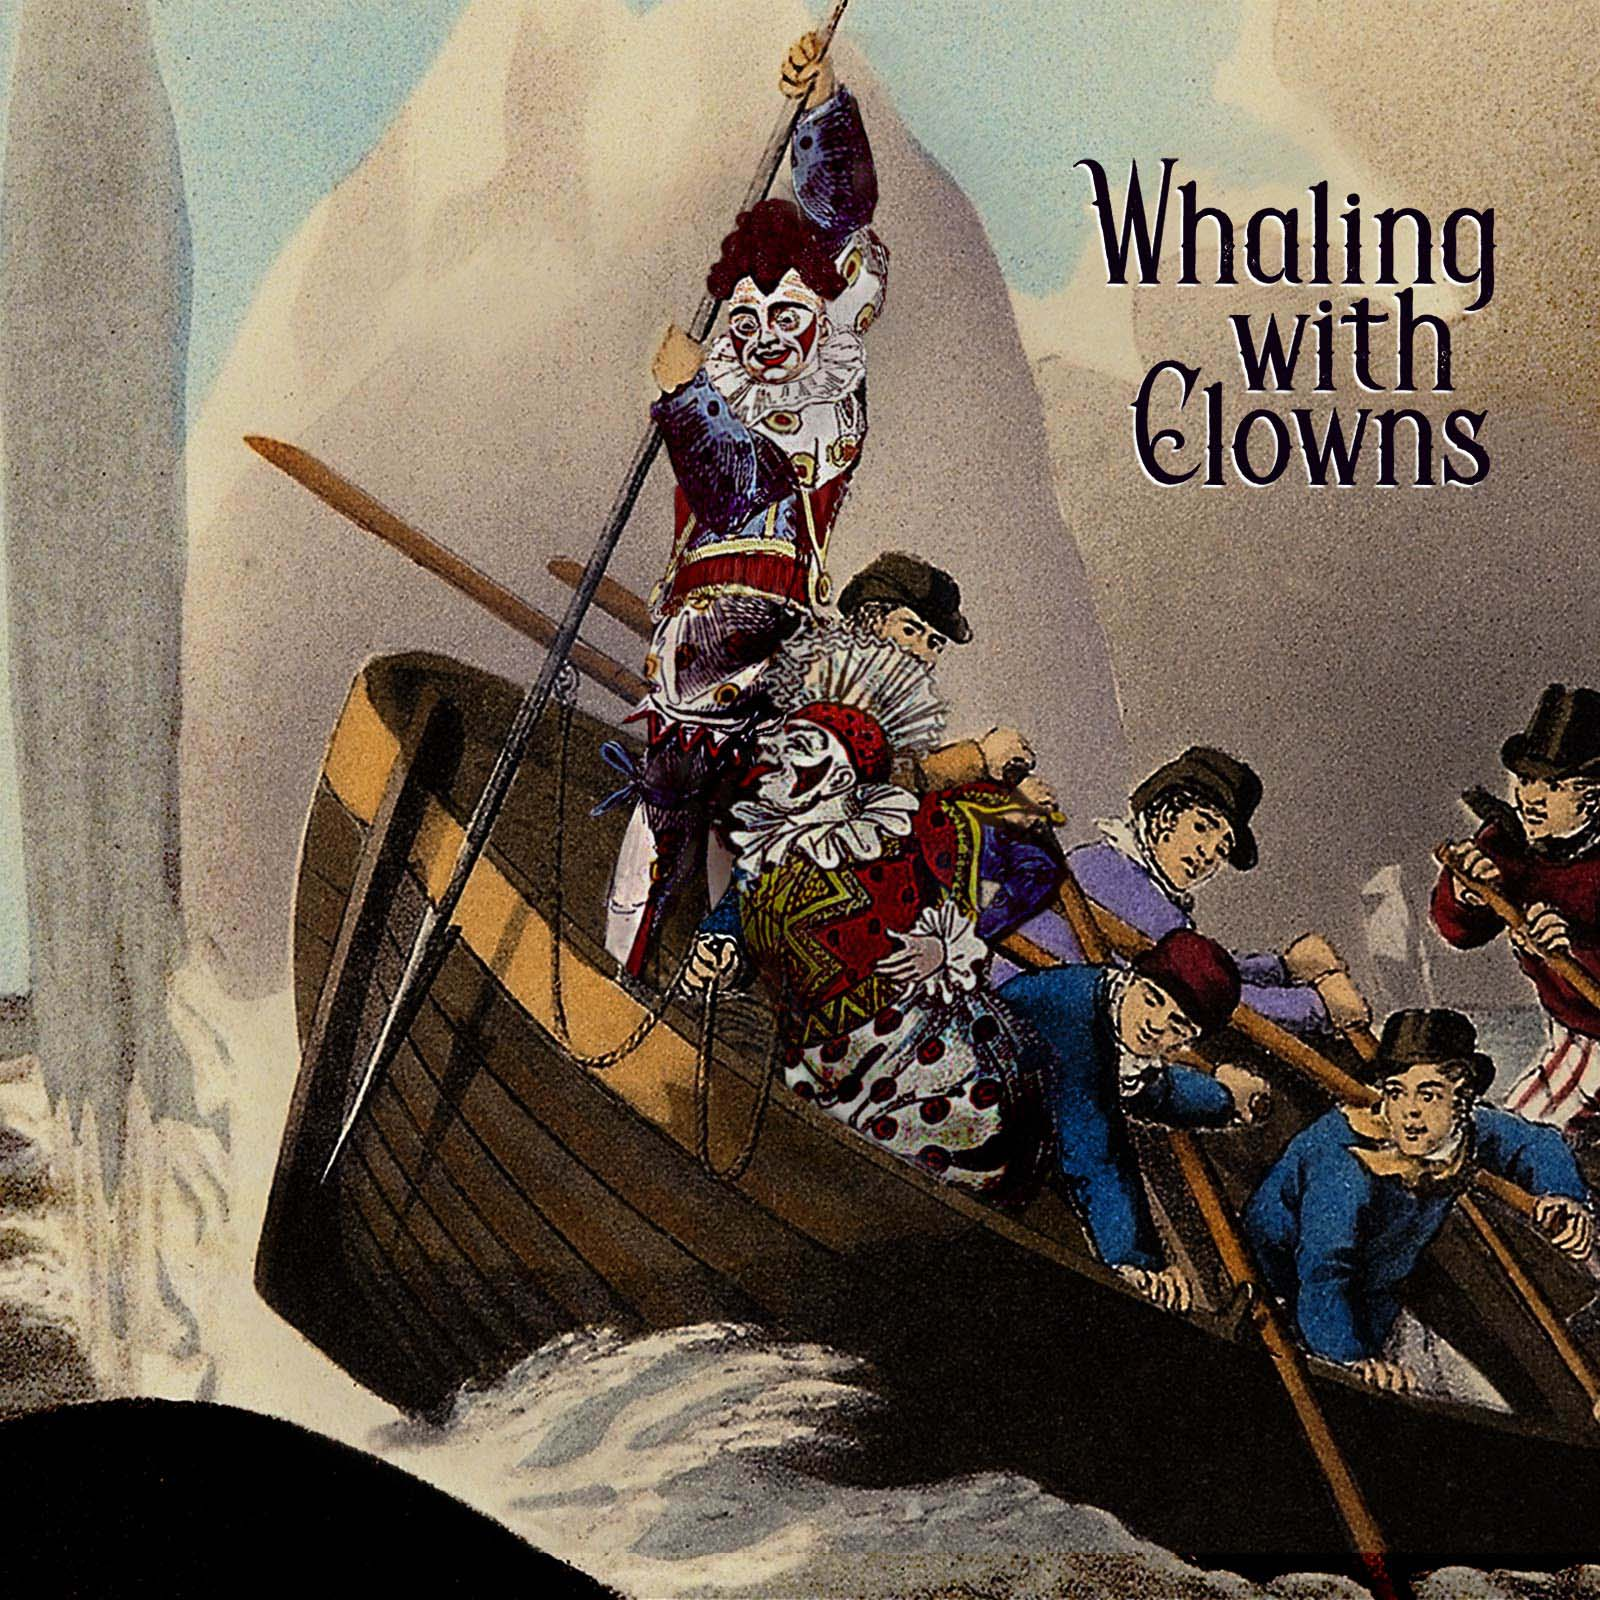 Whaling with Clowns by Chris Kuriata